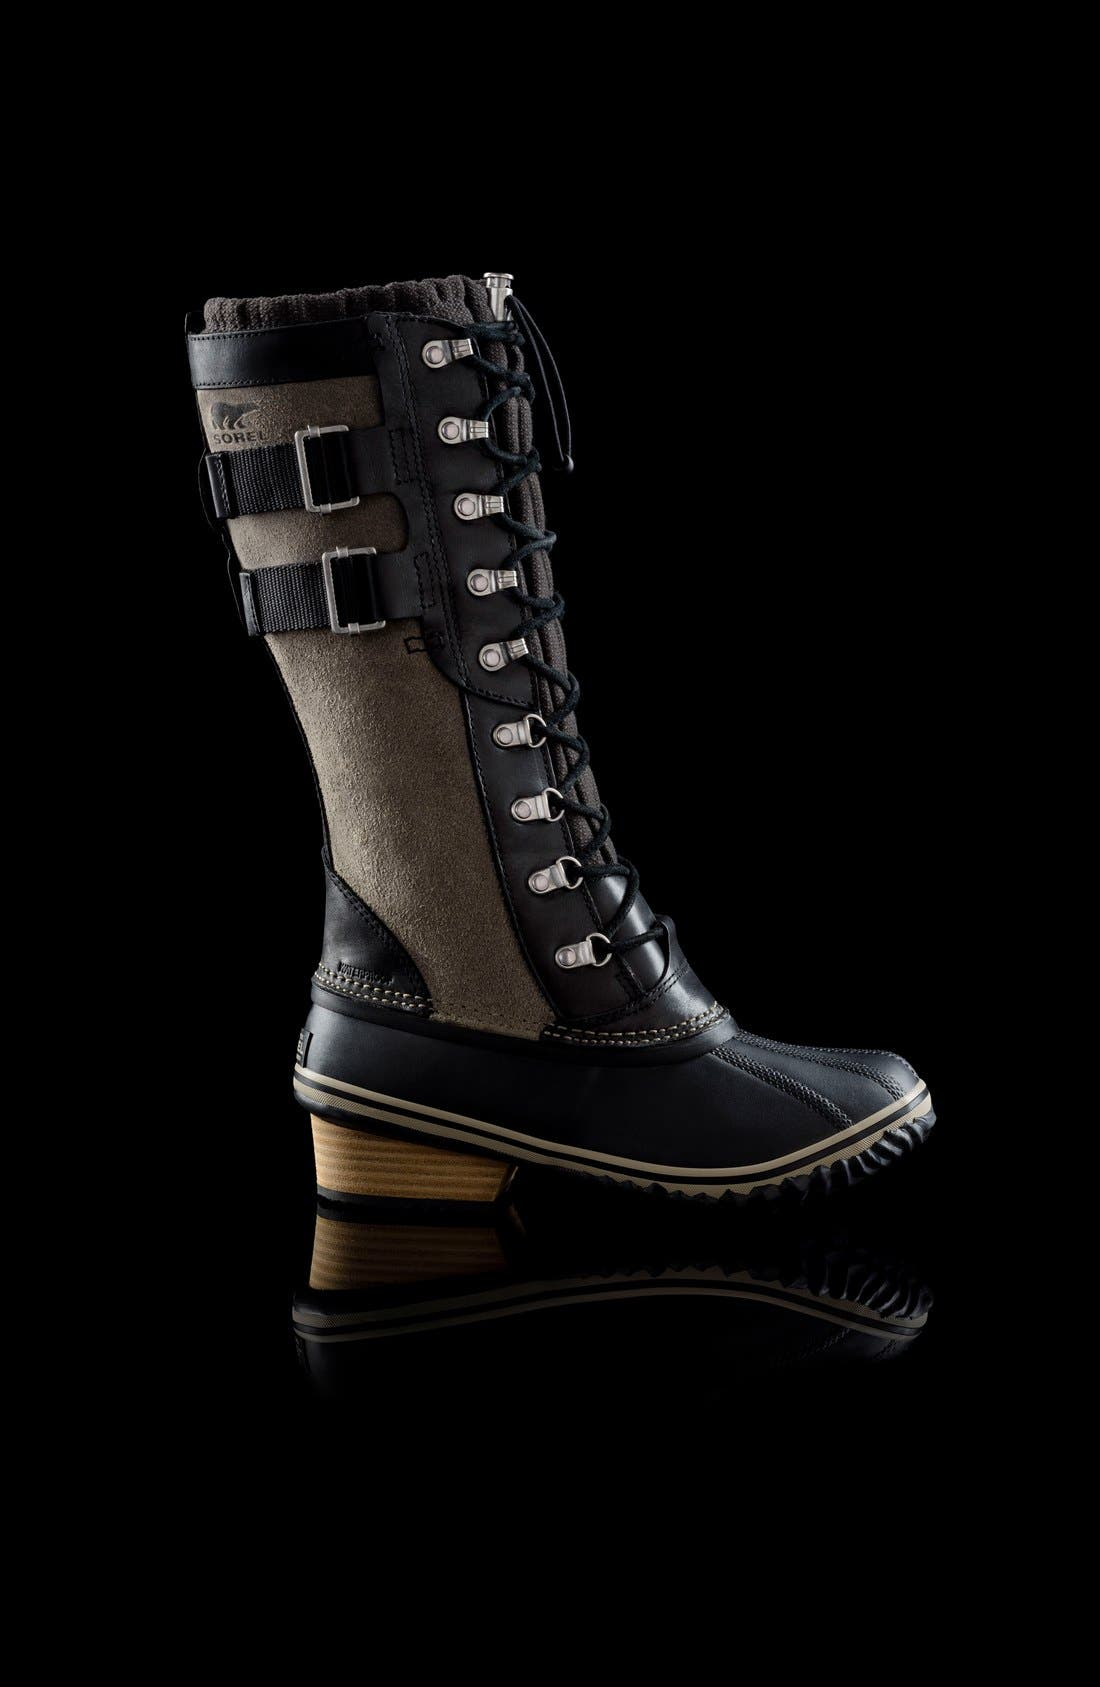 'Conquest Carly II' Waterproof Mid Calf Boot,                             Alternate thumbnail 2, color,                             010